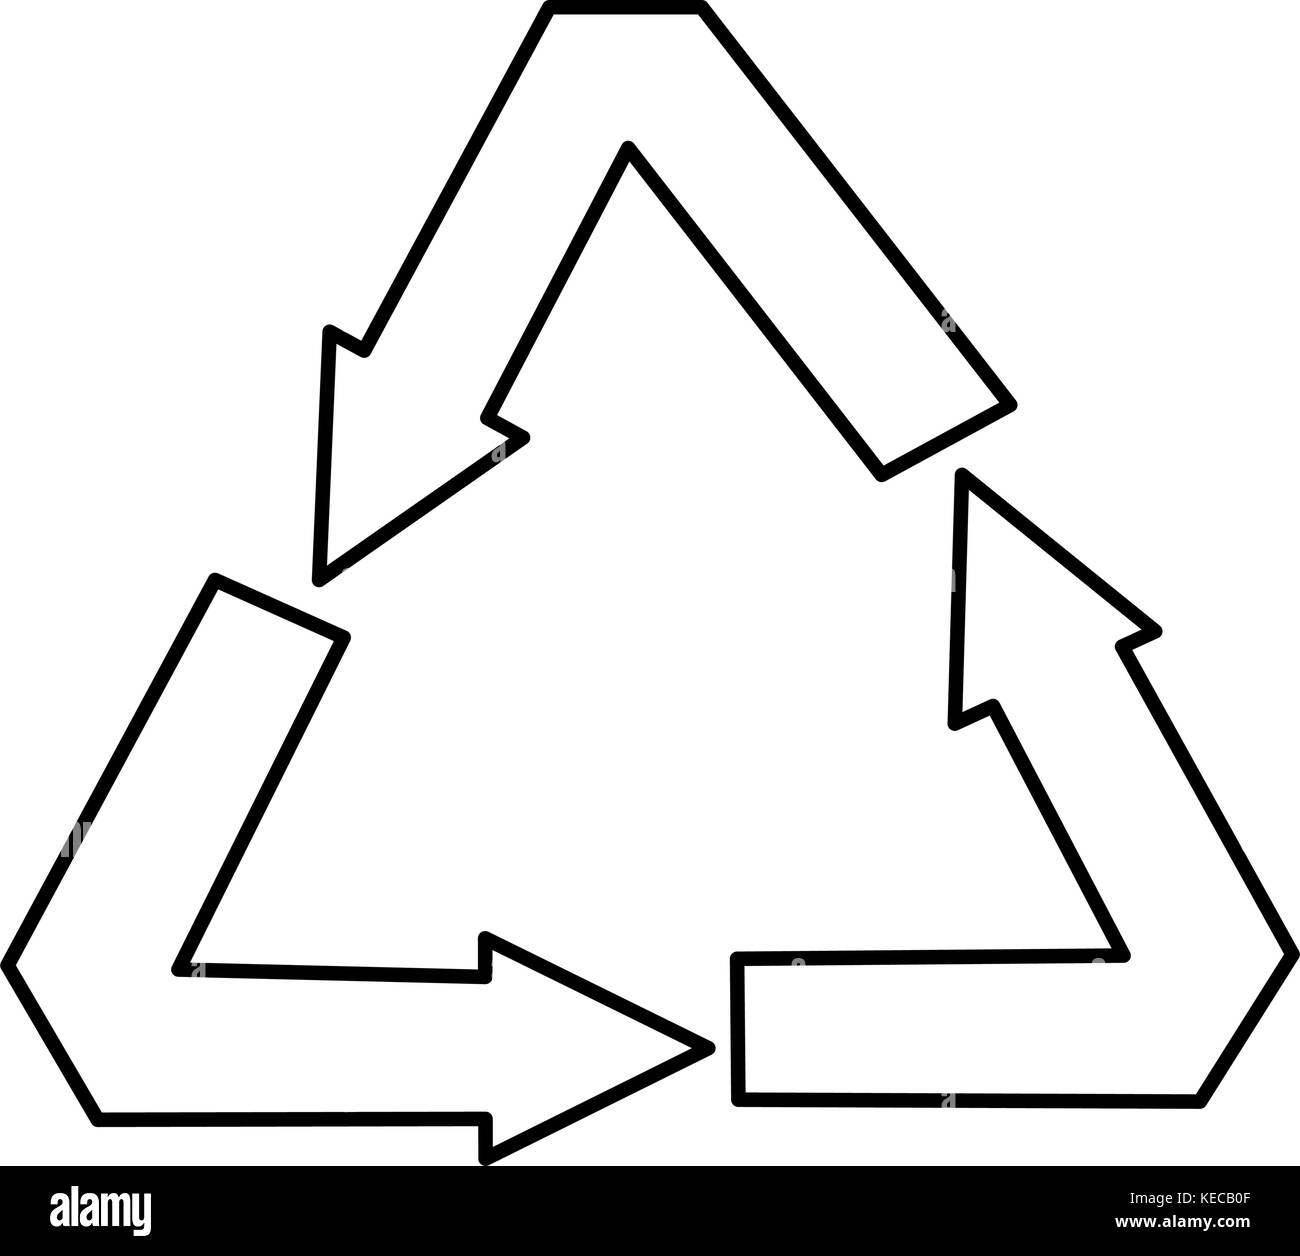 Recycling Symbol Black And White Stock Photos Images Alamy